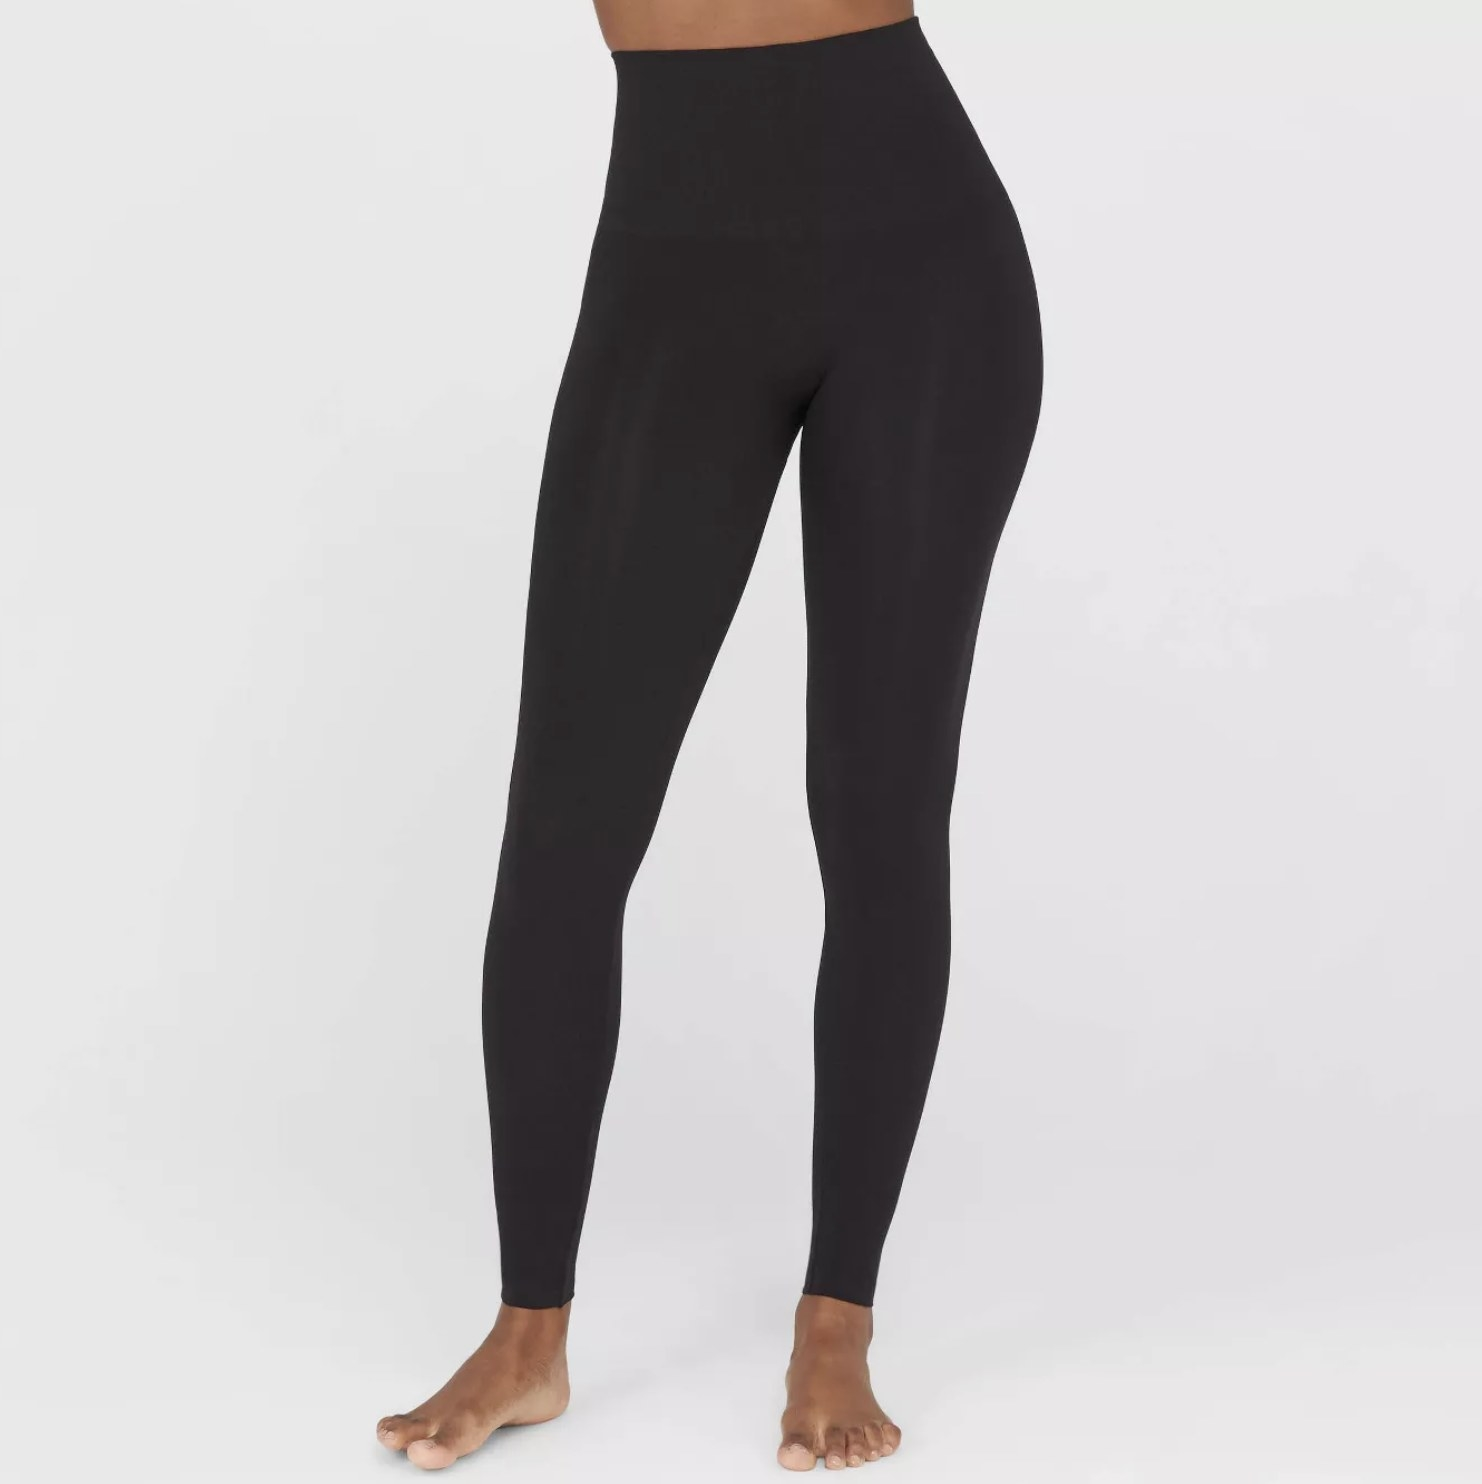 A model wearing a pair of black high-waisted leggings that hit at the ankle